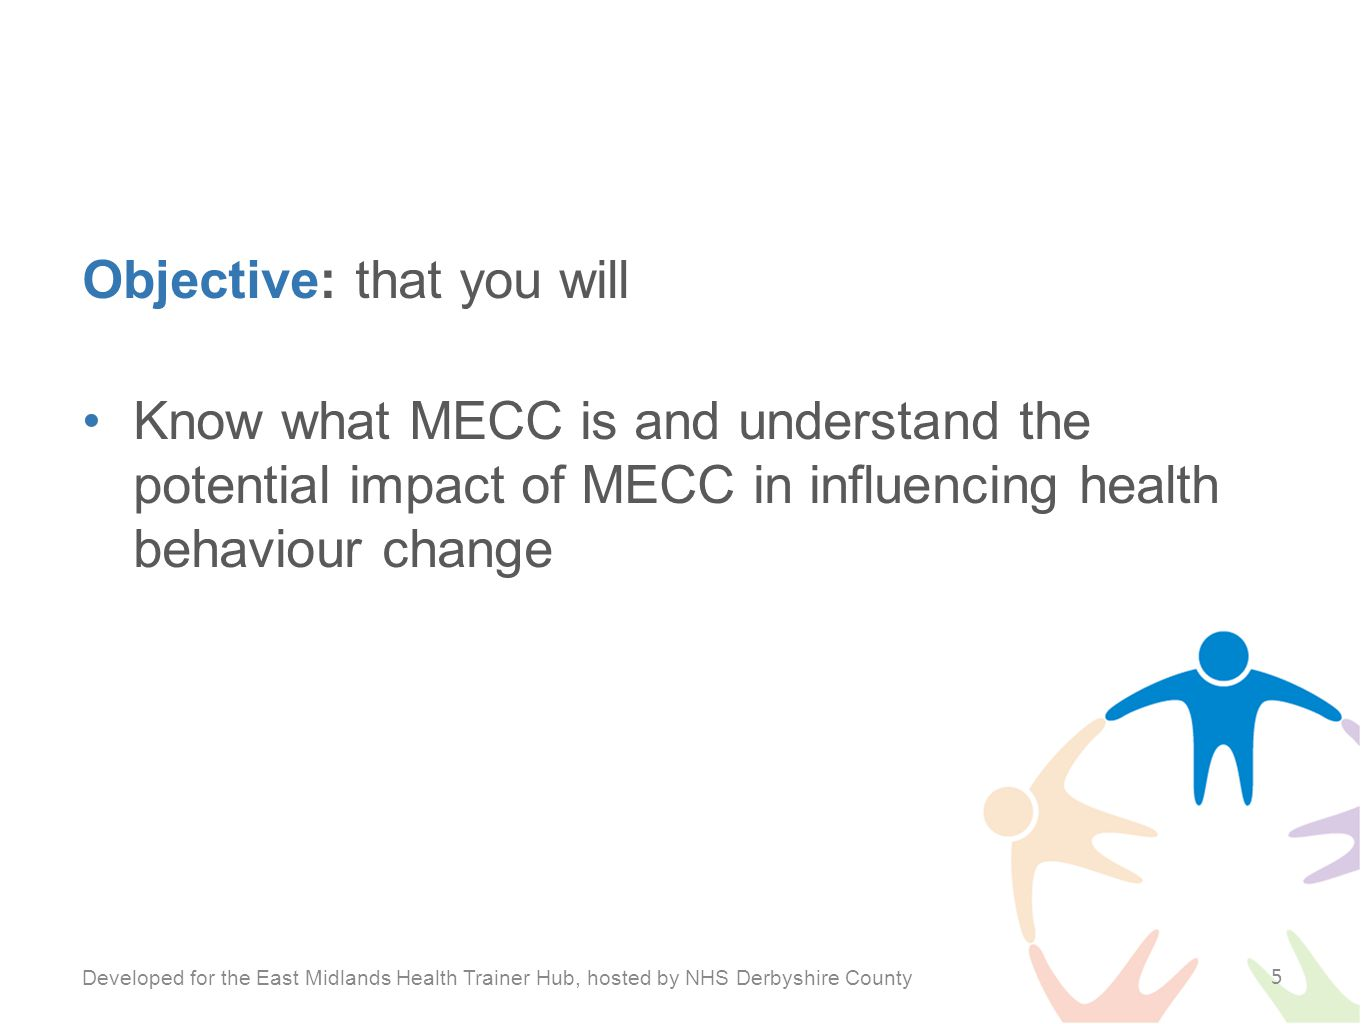 Objective: that you will Know what MECC is and understand the potential impact of MECC in influencing health behaviour change Developed for the East Midlands Health Trainer Hub, hosted by NHS Derbyshire County 5